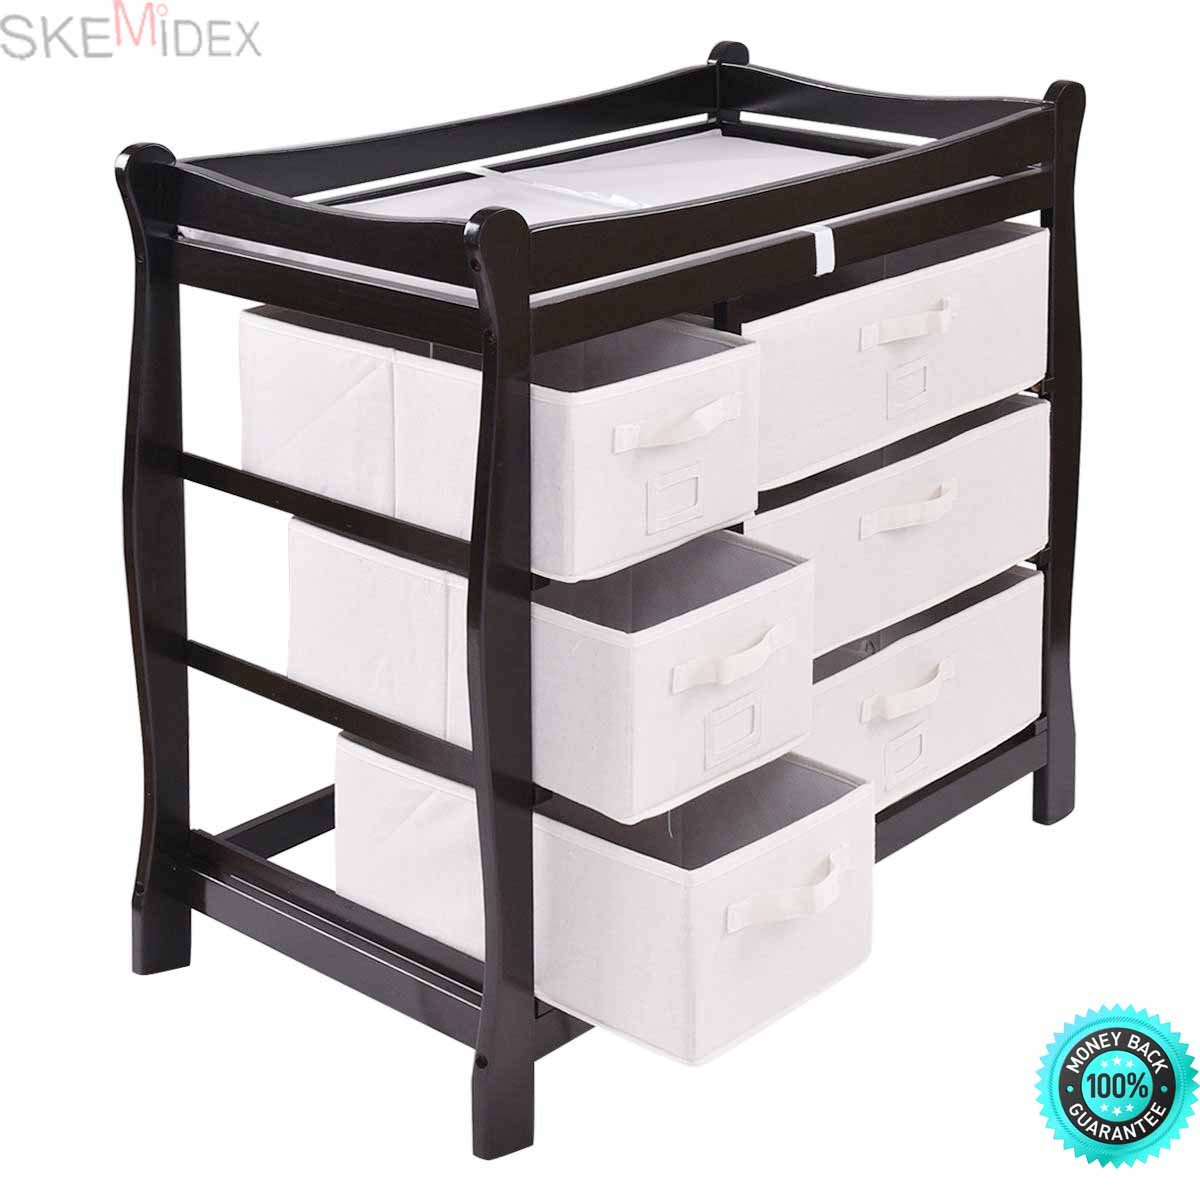 SKEMiDEX--- Sleigh Style Baby Changing Table Diaper 6 Basket Drawer Storage Nursery This Espresso six-basket baby-changing table makes bringing your new bundle of joy home even easier